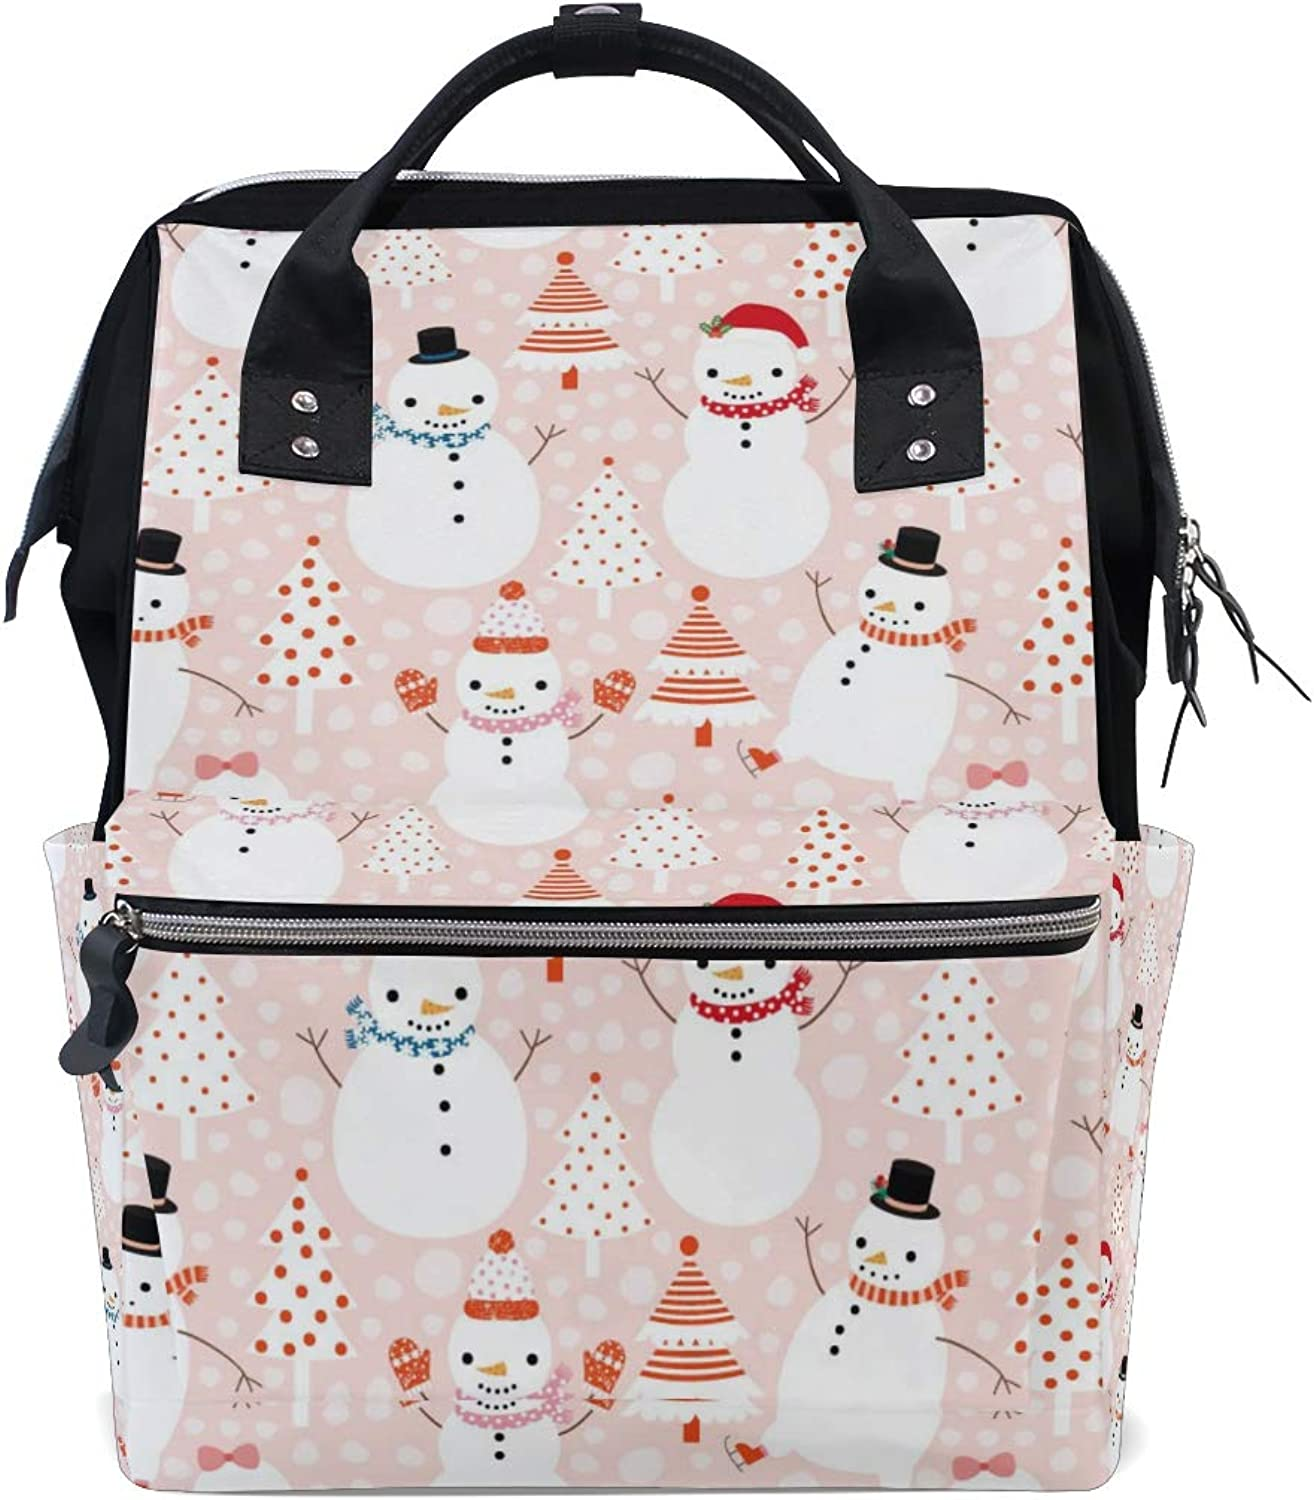 282df9ef91 ColourLife Diaper bag Backpack Cartoon Snowmen Tote Casual Daypack  Multifunctional Nappy Bags Bag nwqltk4340-Sporting goods